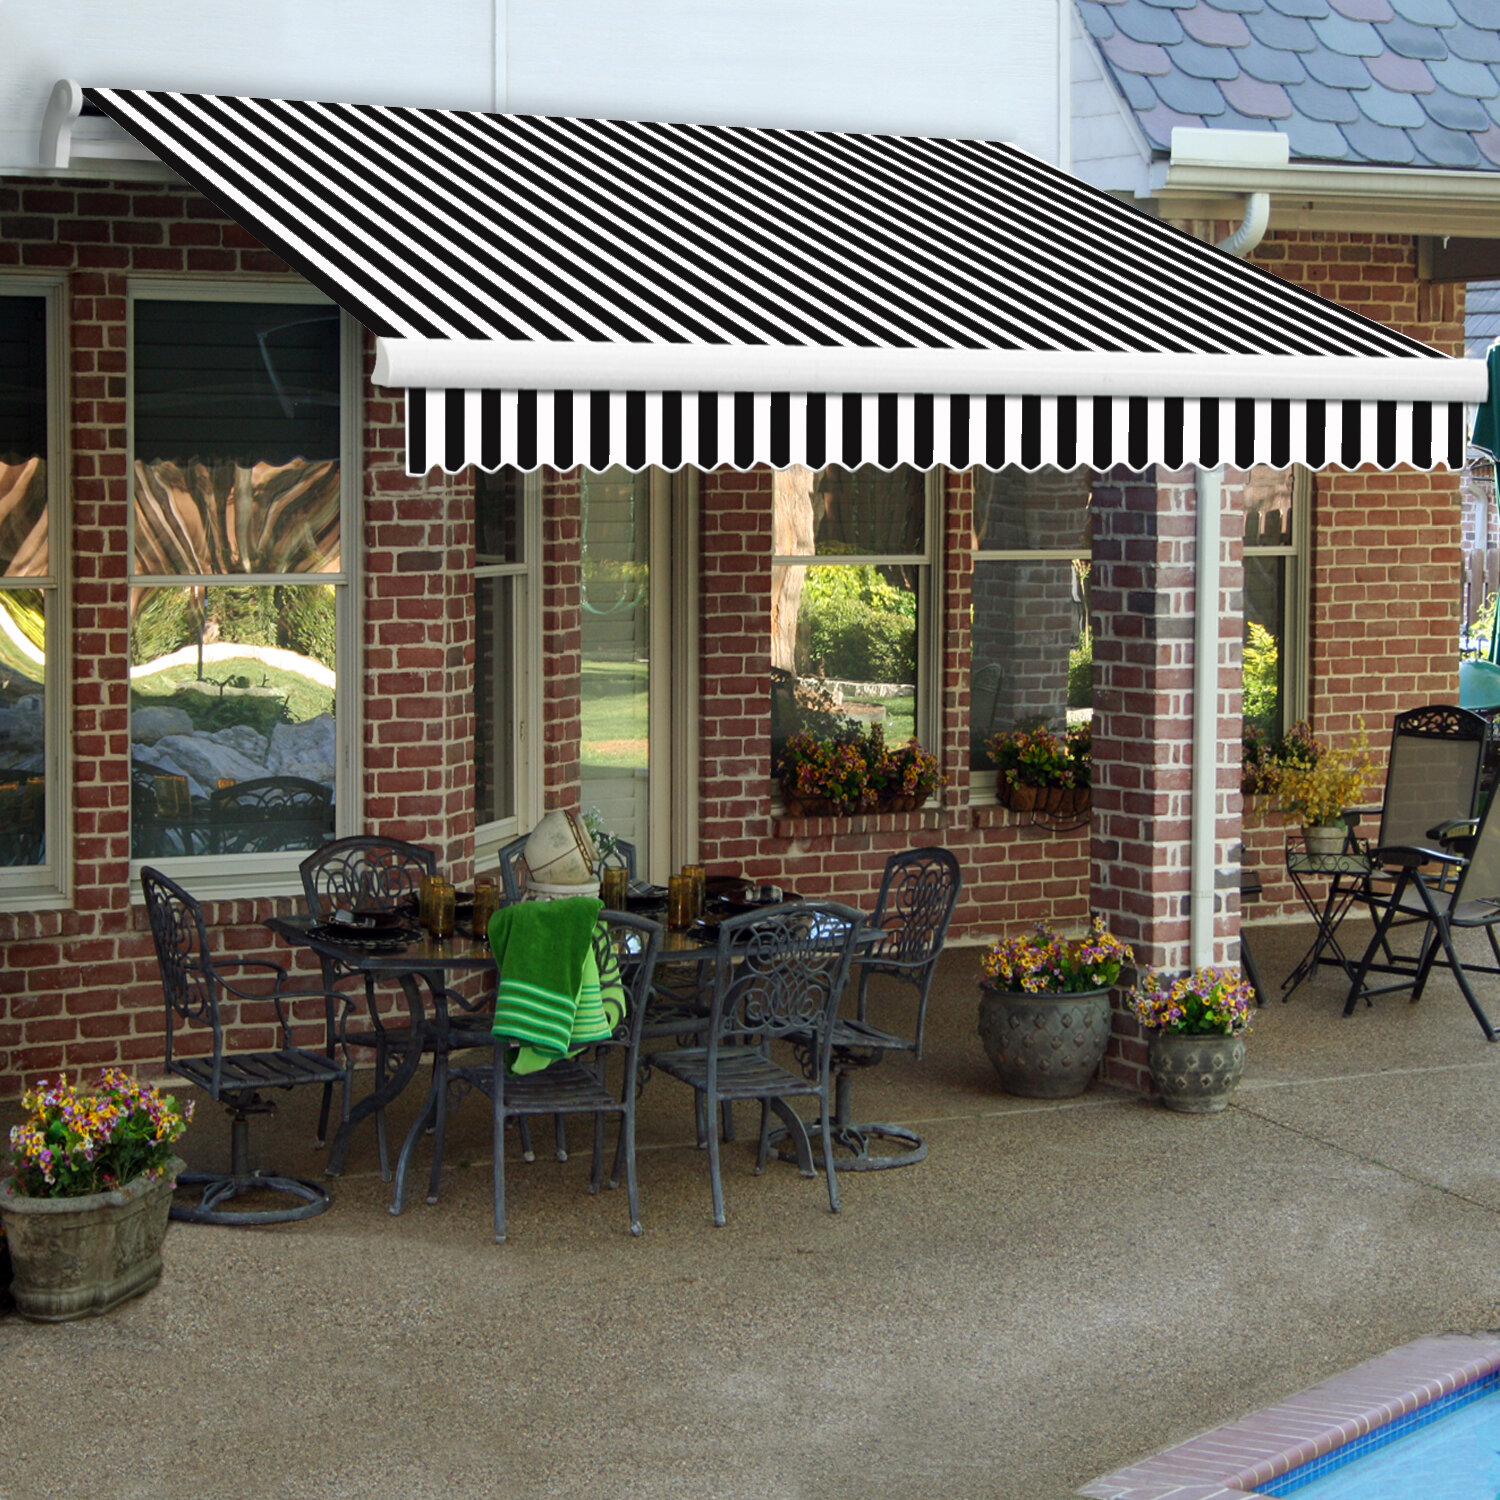 sun best of door decks outdoor patio awning canopy shade deck for retractable awnings